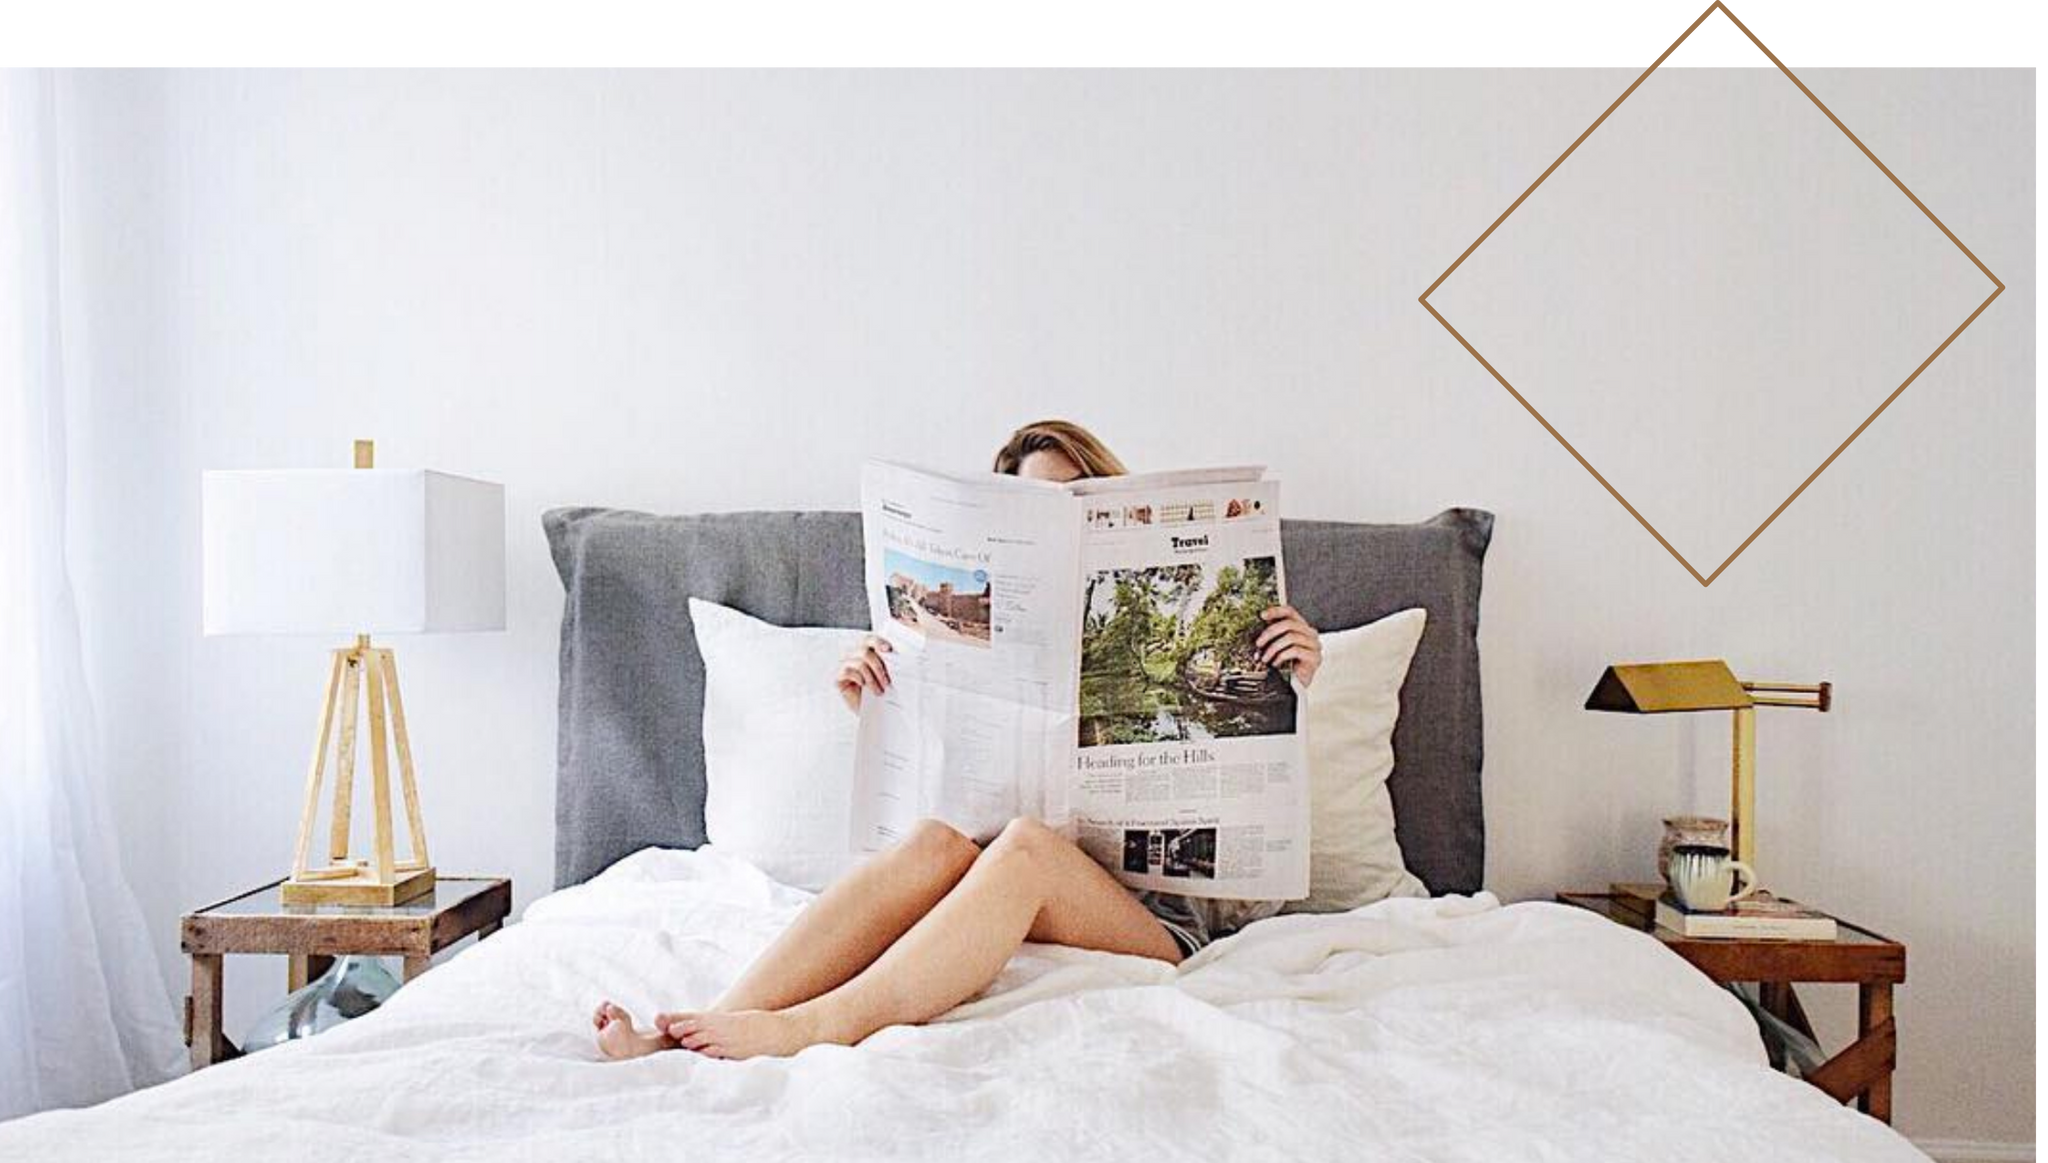 Photo of Jess reading a New York Times article about the challenges that climate change presents in bed